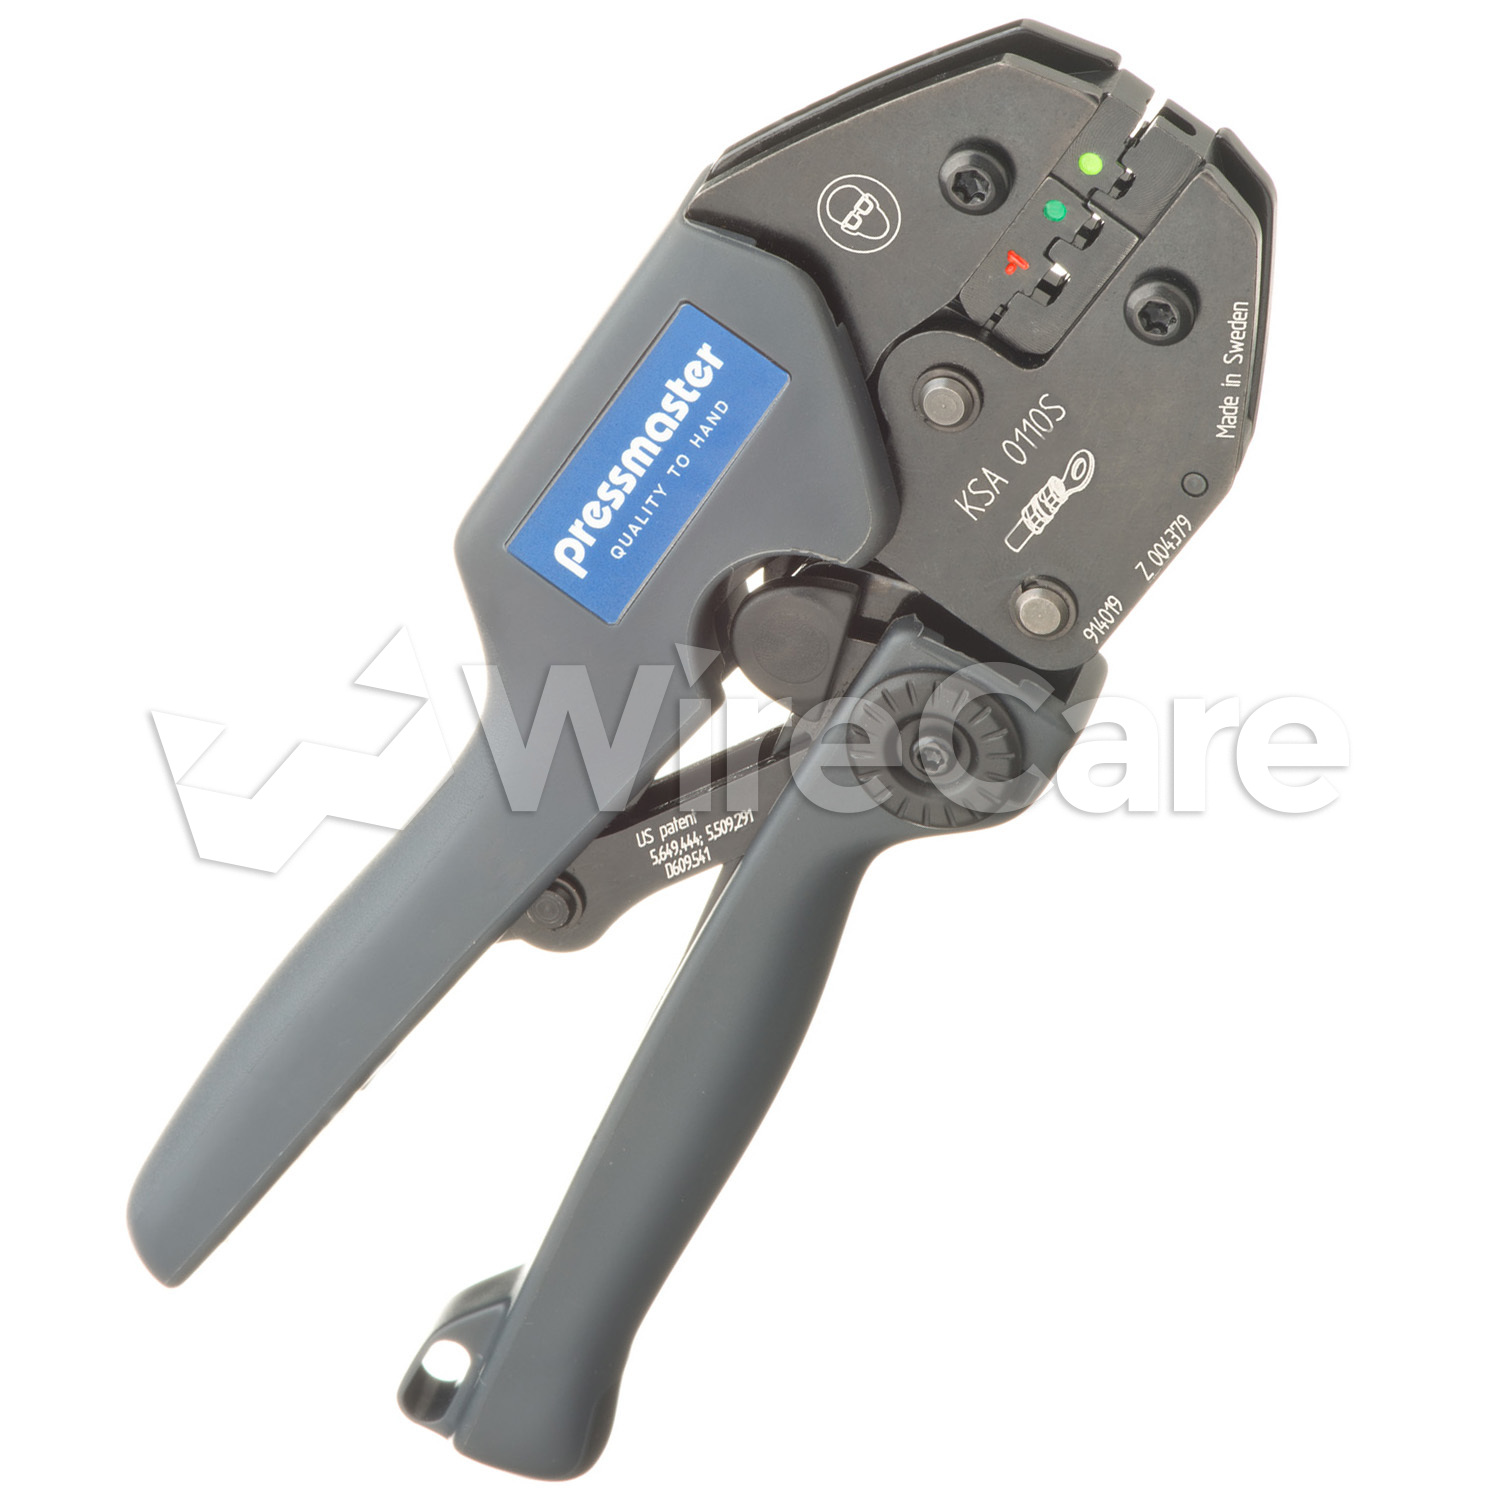 Ksa 0110s Ergonomic Crimper For Insulated Terminals And Splices 16 26 Awg